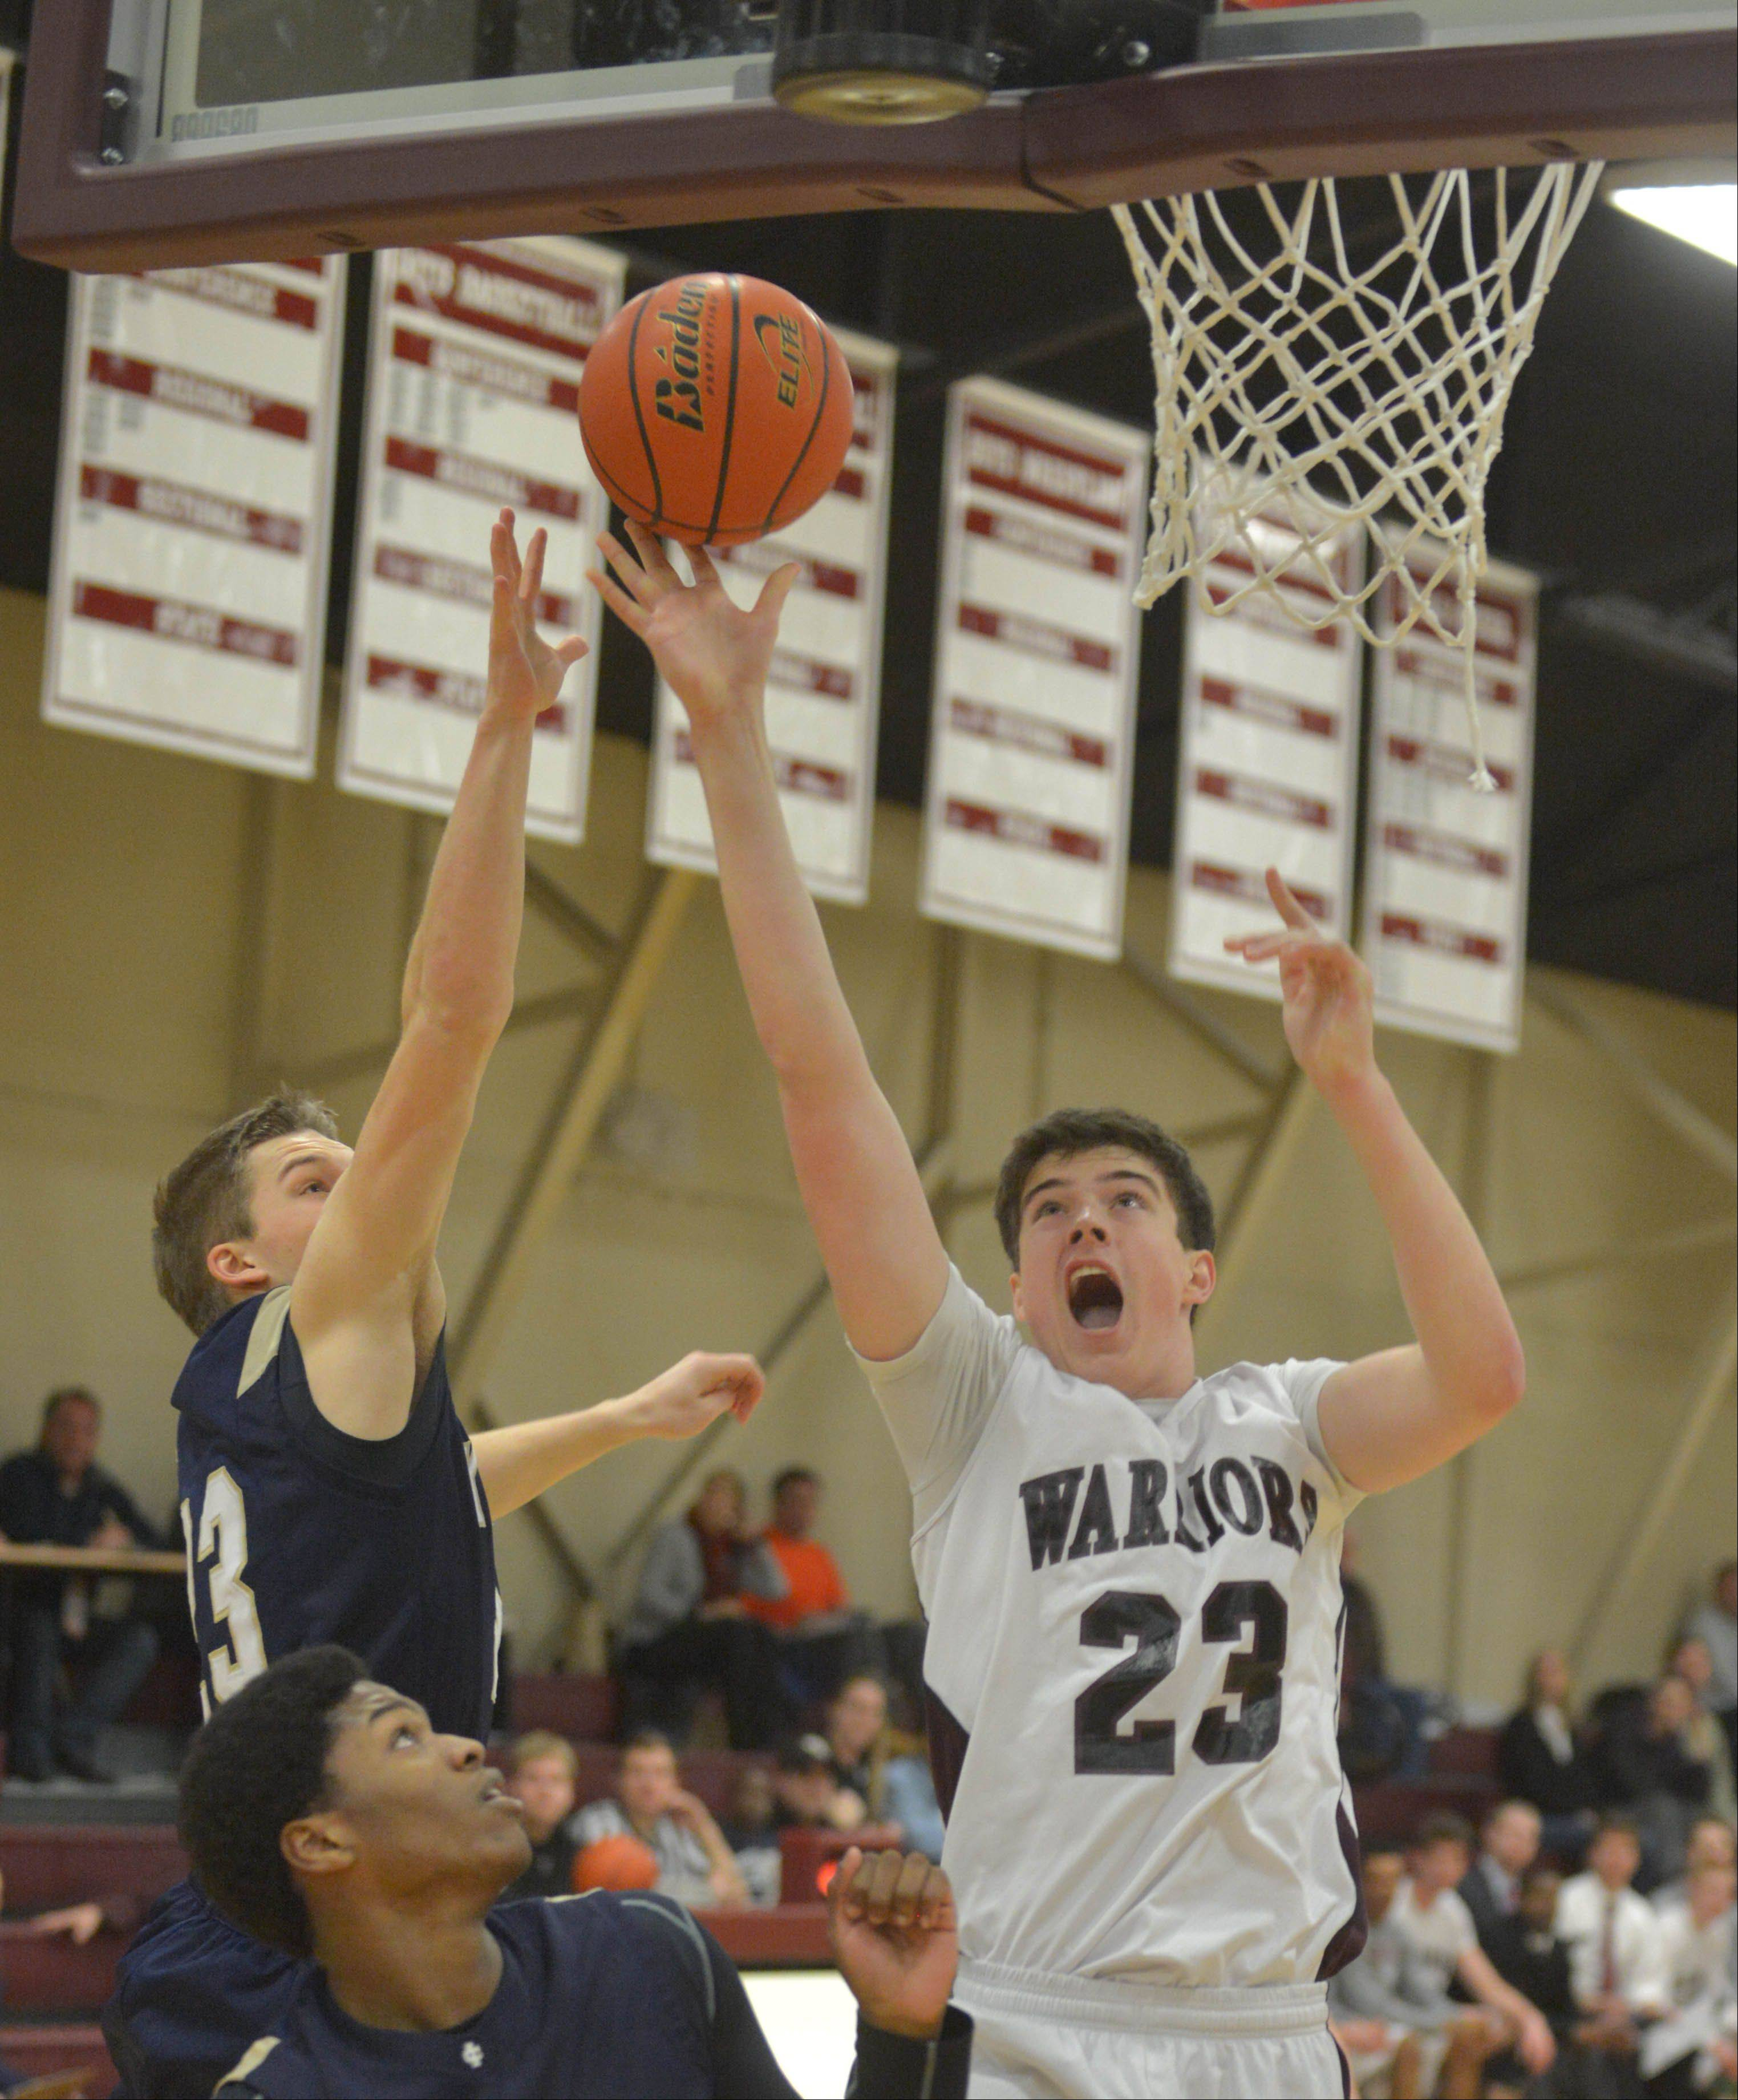 Clark Brinkman of IC Catholic Prep,left, and Bennett Fuzak of Wheaton Academy go for a rebound.